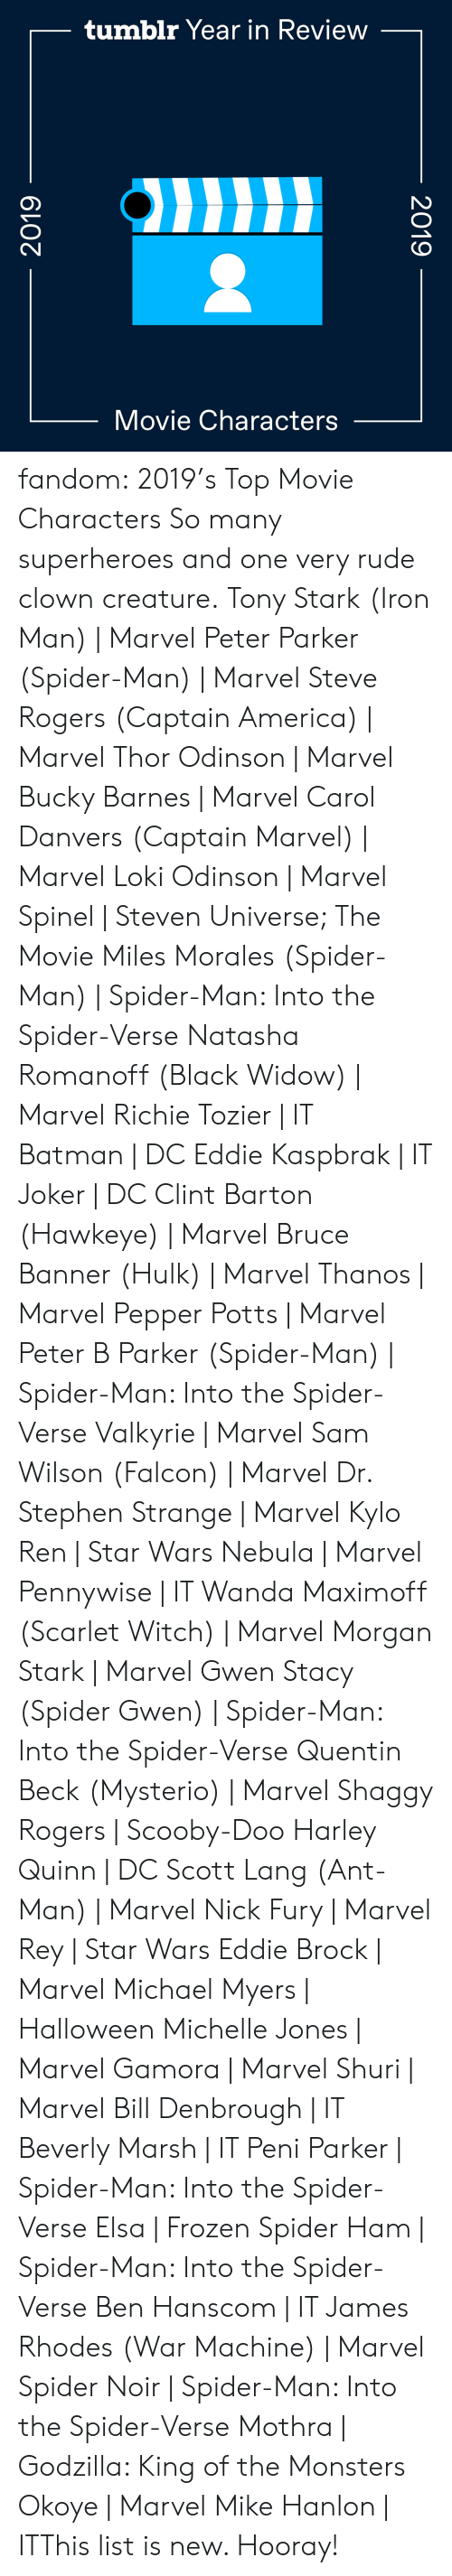 ham: tumblr Year in Review  Movie Characters  2019  2019 fandom:  2019's Top Movie Characters  So many superheroes and one very rude clown creature.  Tony Stark (Iron Man) | Marvel  Peter Parker (Spider-Man) | Marvel  Steve Rogers (Captain America) | Marvel  Thor Odinson | Marvel  Bucky Barnes | Marvel  Carol Danvers (Captain Marvel) | Marvel  Loki Odinson | Marvel  Spinel | Steven Universe; The Movie  Miles Morales (Spider-Man) | Spider-Man: Into the Spider-Verse  Natasha Romanoff (Black Widow) | Marvel  Richie Tozier | IT  Batman | DC  Eddie Kaspbrak | IT  Joker | DC  Clint Barton (Hawkeye) | Marvel  Bruce Banner (Hulk) | Marvel  Thanos | Marvel  Pepper Potts | Marvel  Peter B Parker (Spider-Man) | Spider-Man: Into the Spider-Verse  Valkyrie | Marvel  Sam Wilson (Falcon) | Marvel  Dr. Stephen Strange | Marvel  Kylo Ren | Star Wars  Nebula | Marvel  Pennywise | IT  Wanda Maximoff (Scarlet Witch) | Marvel  Morgan Stark | Marvel  Gwen Stacy (Spider Gwen) | Spider-Man: Into the Spider-Verse  Quentin Beck (Mysterio) | Marvel  Shaggy Rogers | Scooby-Doo  Harley Quinn | DC  Scott Lang (Ant-Man) | Marvel  Nick Fury | Marvel  Rey | Star Wars  Eddie Brock | Marvel  Michael Myers | Halloween  Michelle Jones | Marvel  Gamora | Marvel  Shuri | Marvel  Bill Denbrough | IT  Beverly Marsh | IT  Peni Parker | Spider-Man: Into the Spider-Verse  Elsa | Frozen  Spider Ham | Spider-Man: Into the Spider-Verse  Ben Hanscom | IT  James Rhodes (War Machine) | Marvel  Spider Noir | Spider-Man: Into the Spider-Verse  Mothra | Godzilla: King of the Monsters  Okoye | Marvel Mike Hanlon | ITThis list is new. Hooray!